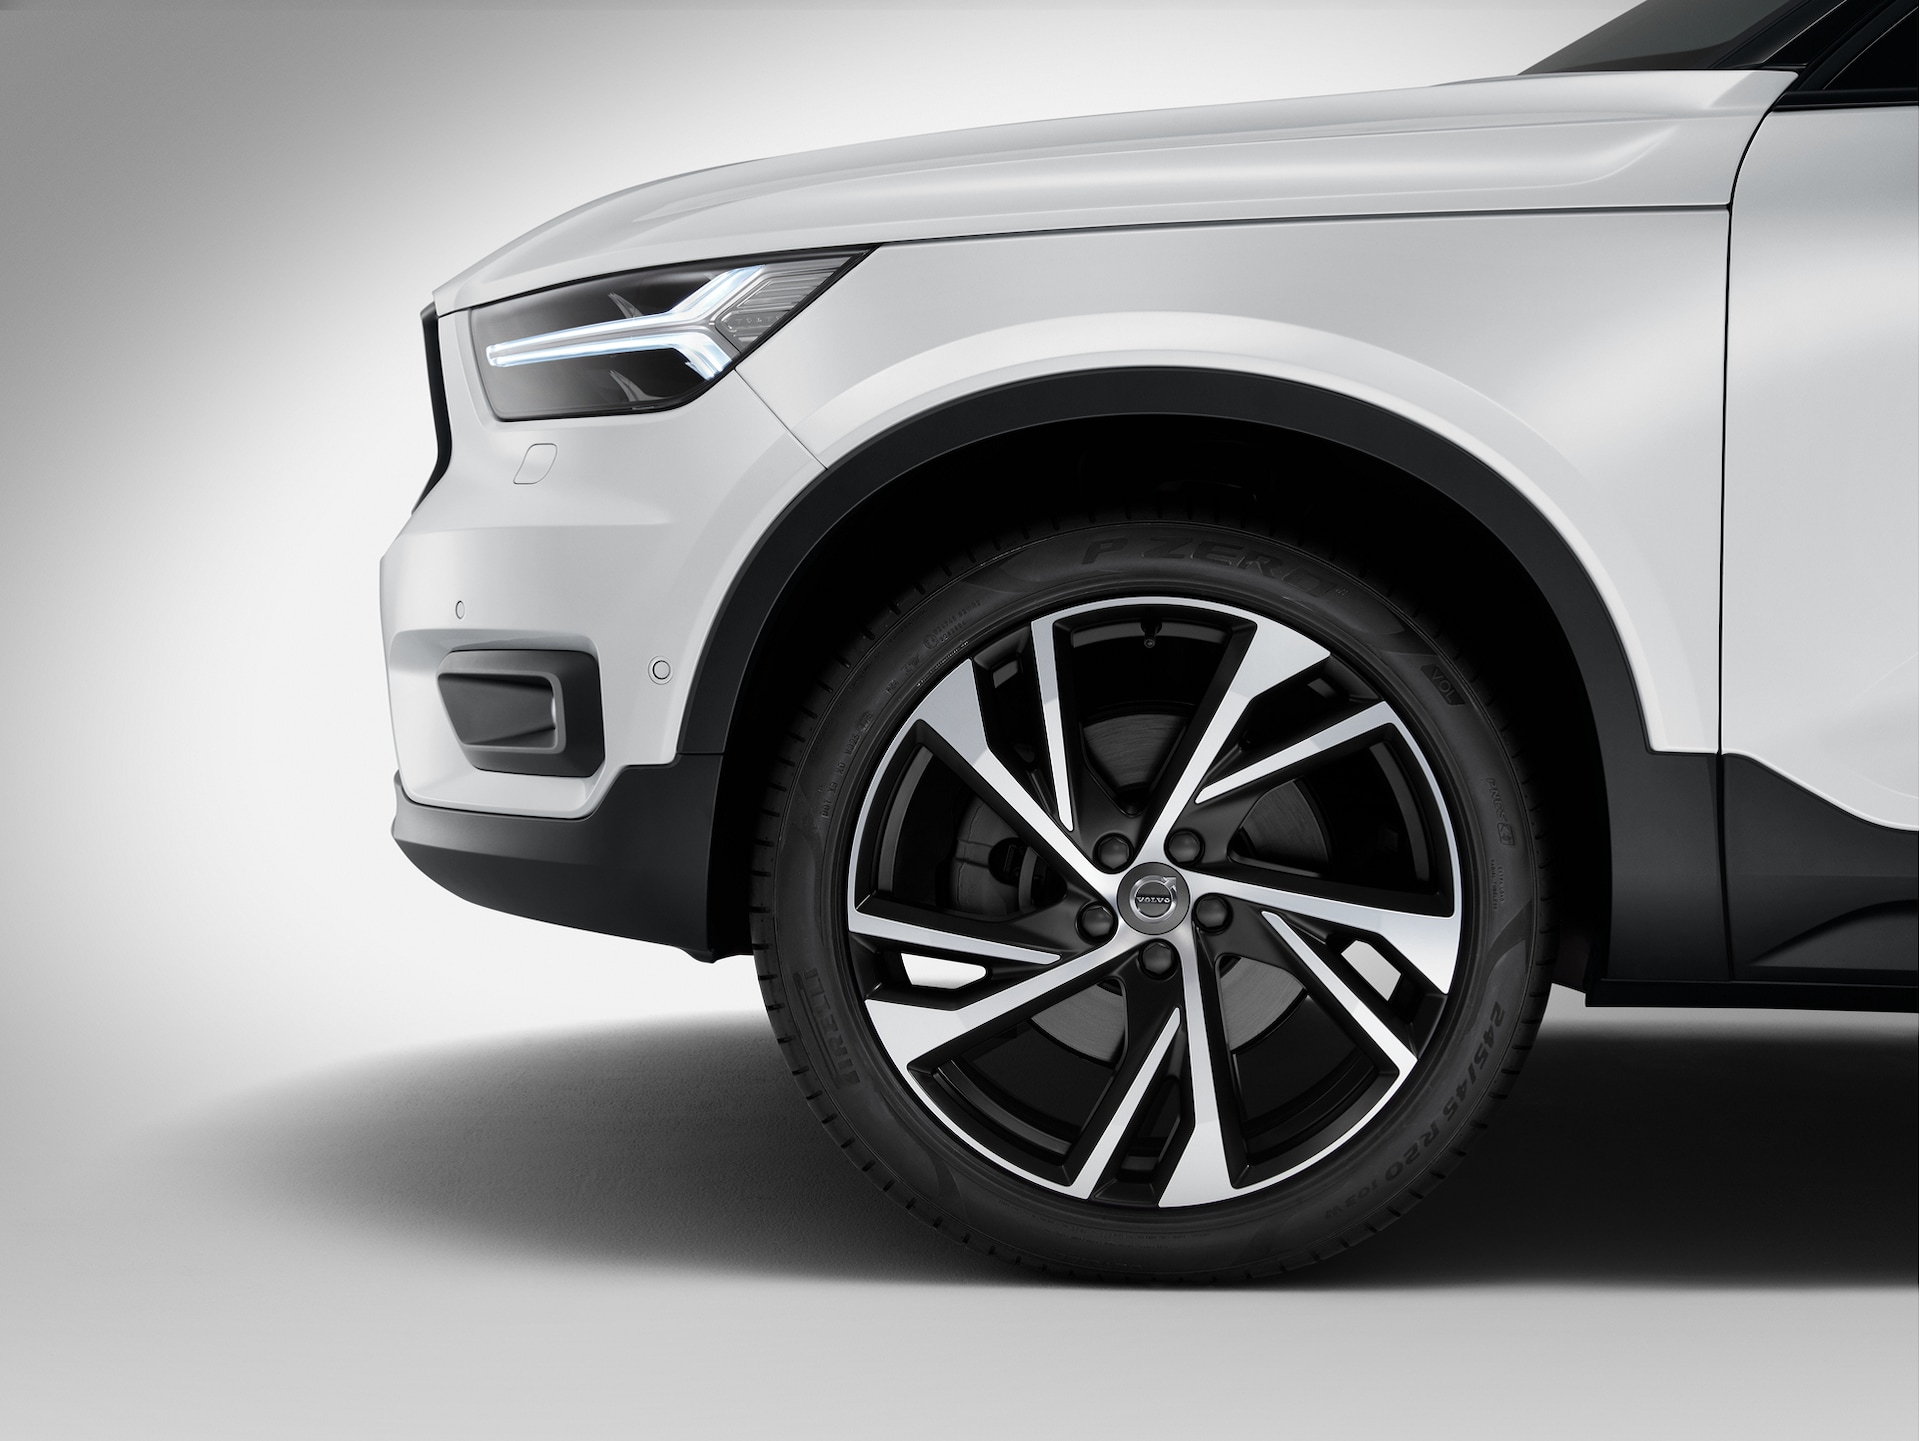 A Volvo XC40 model's wheel from left side view